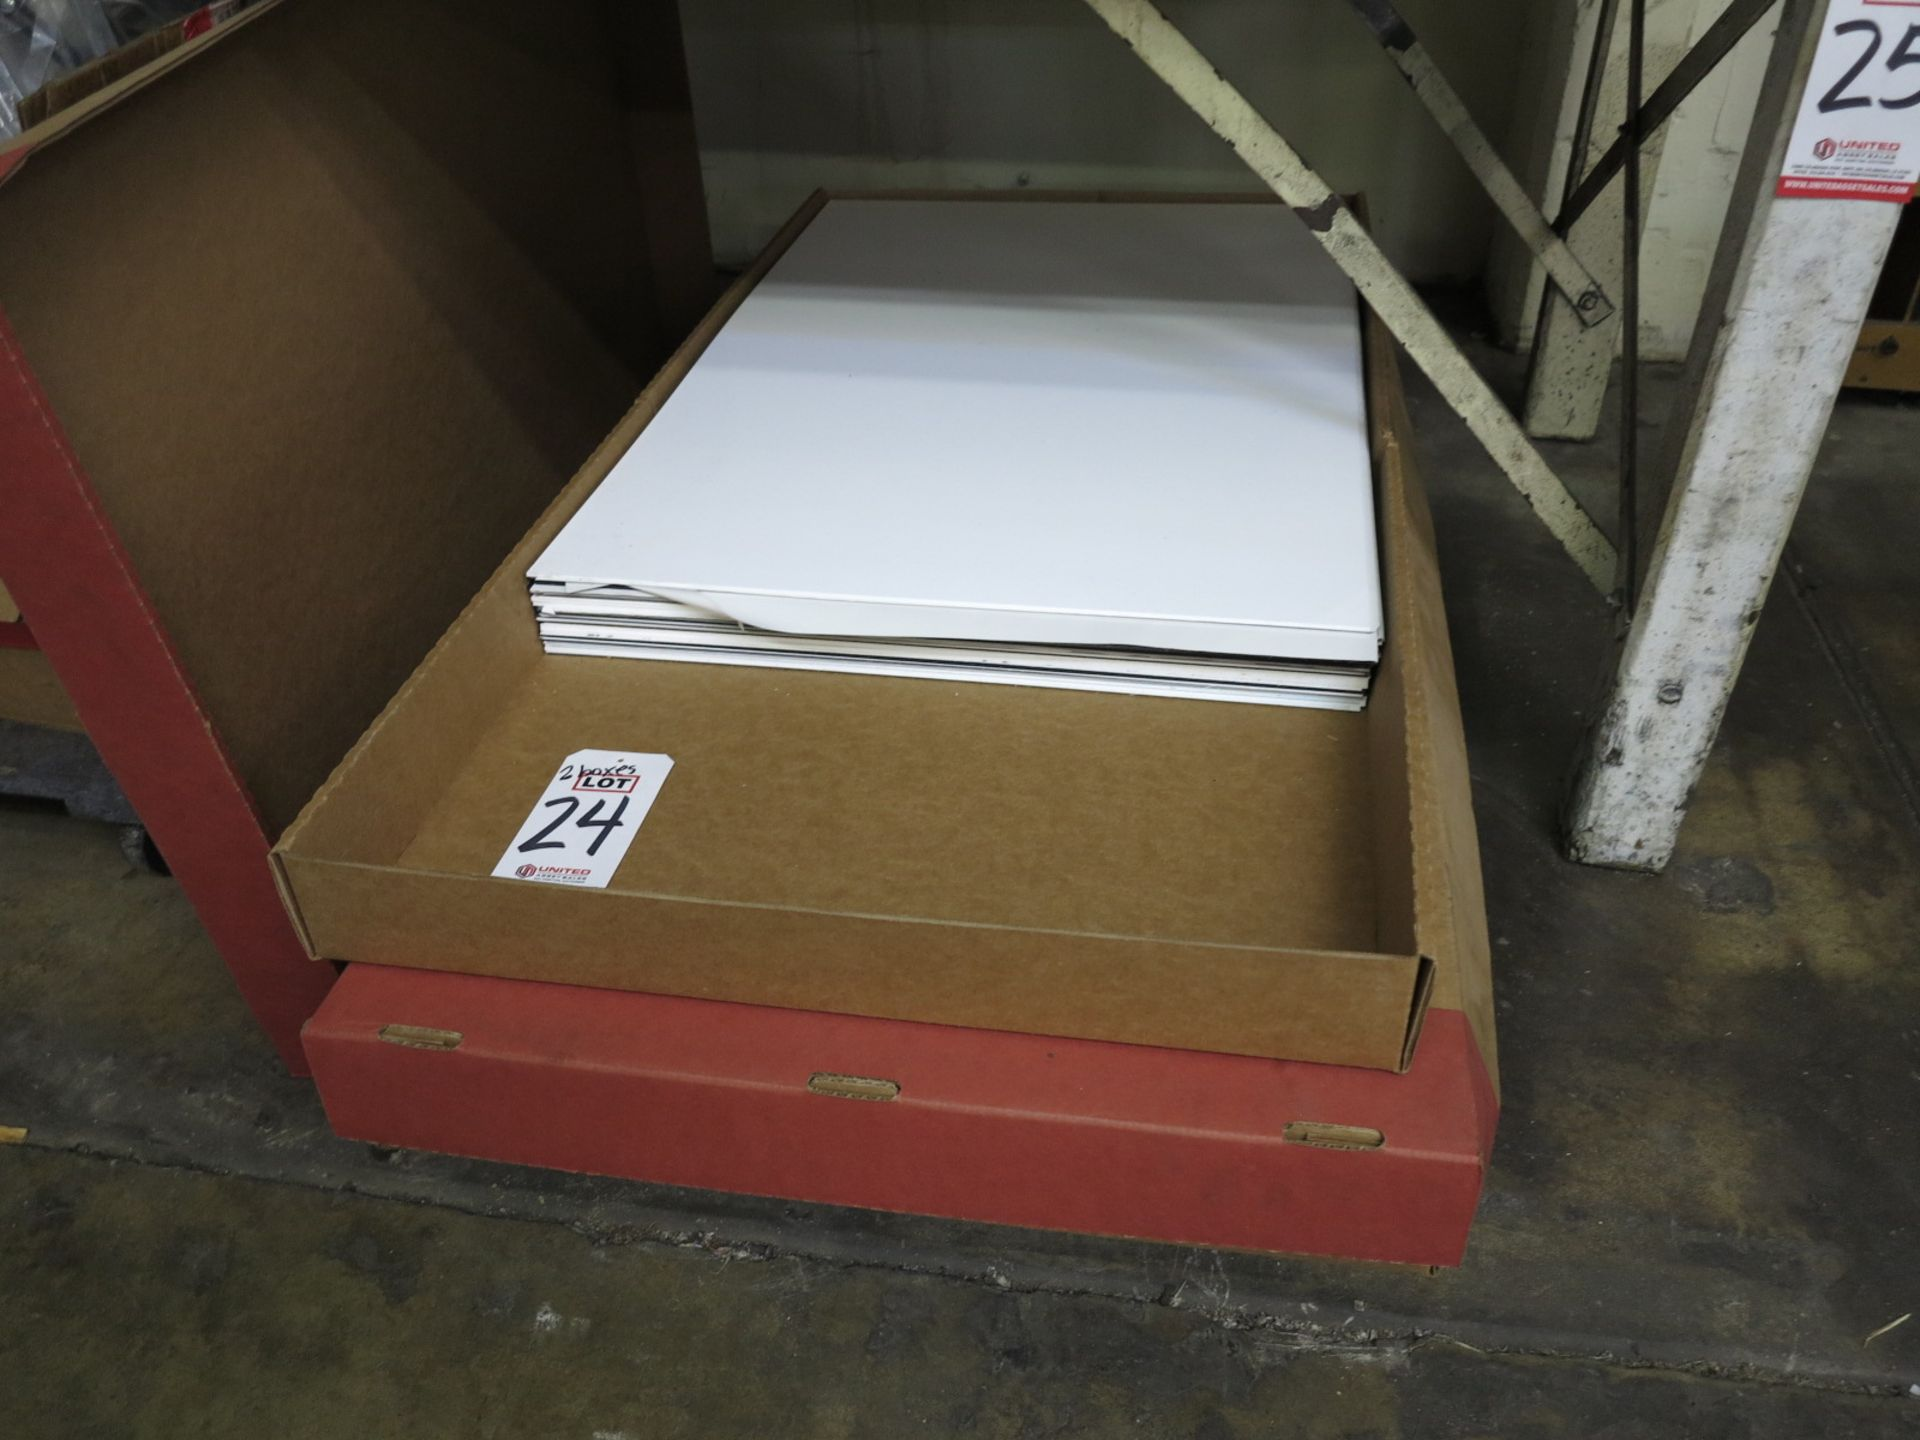 Lot 24 - LOT - (2) BOXES OF PREMIUM ENGRAVING, ADA AND ARCHITECTURAL SIGN SUBSTRATES, 2' X 3'